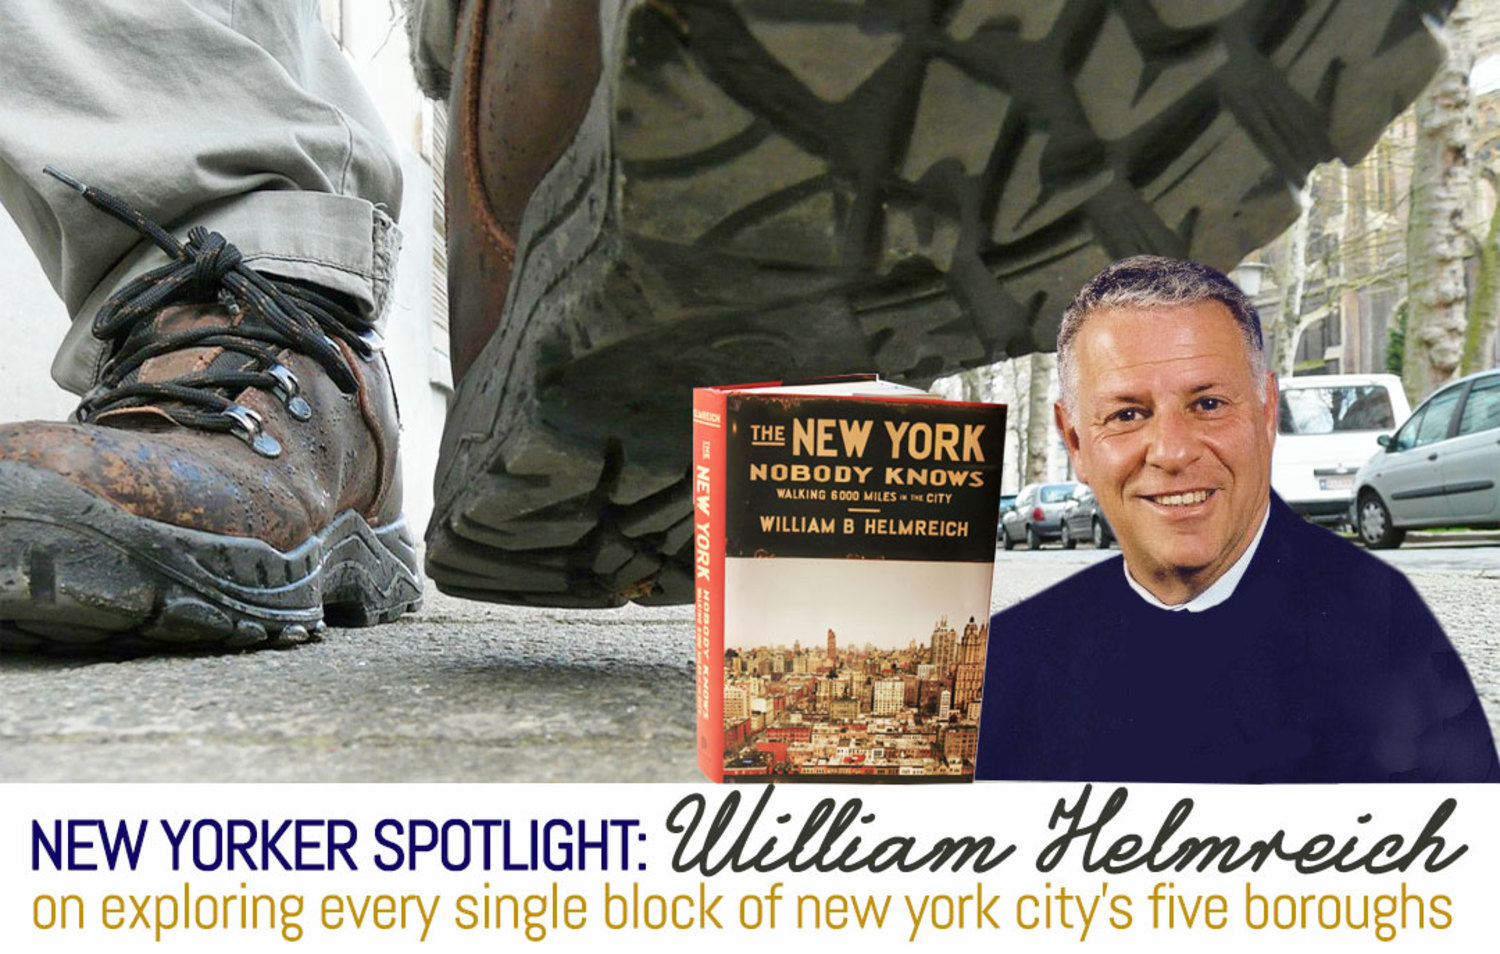 New Yorker Spotlight: William Helmreich Went on the Ultimate 6,000-Mile Walking Tour of NYC